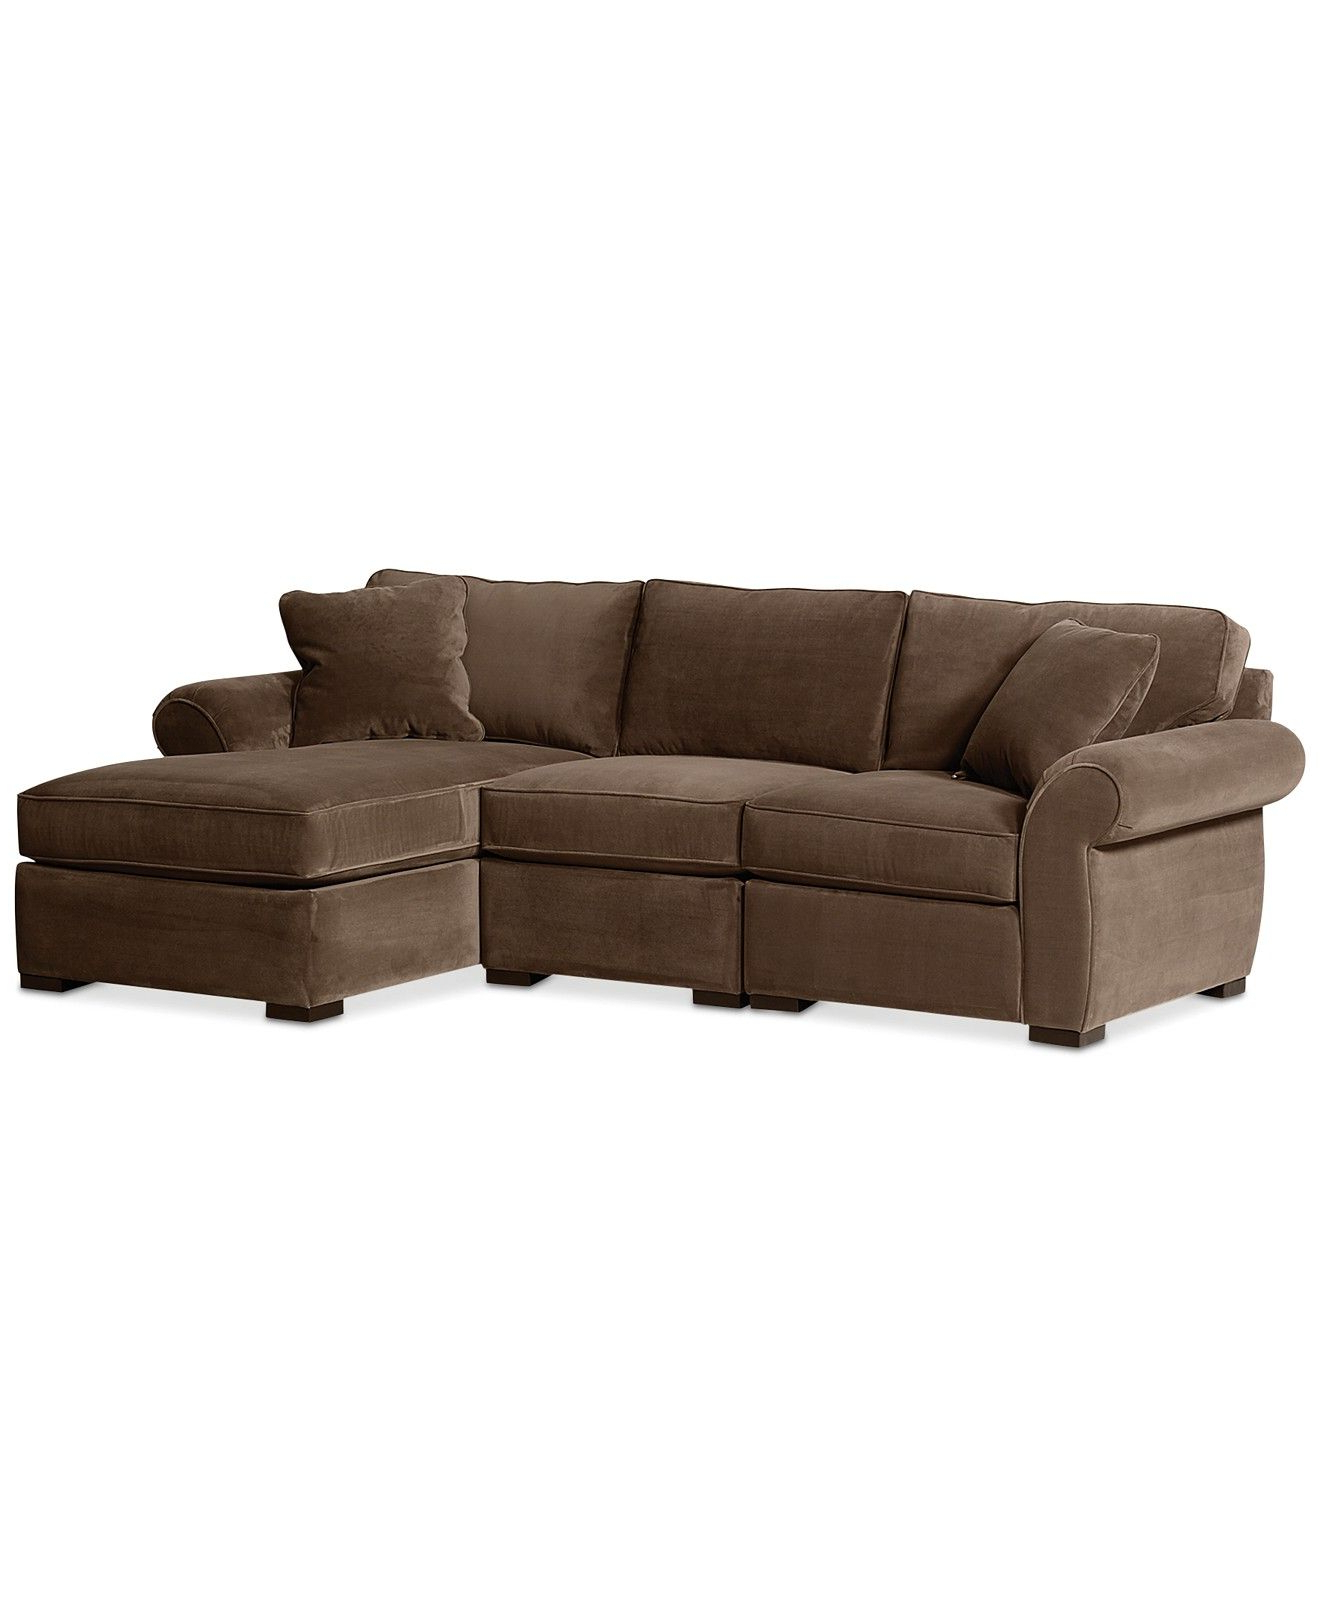 Trevor Sofas With Regard To Newest Trevor Fabric 3 Piece Chaise Sectional Sofa – Sectional (View 18 of 20)